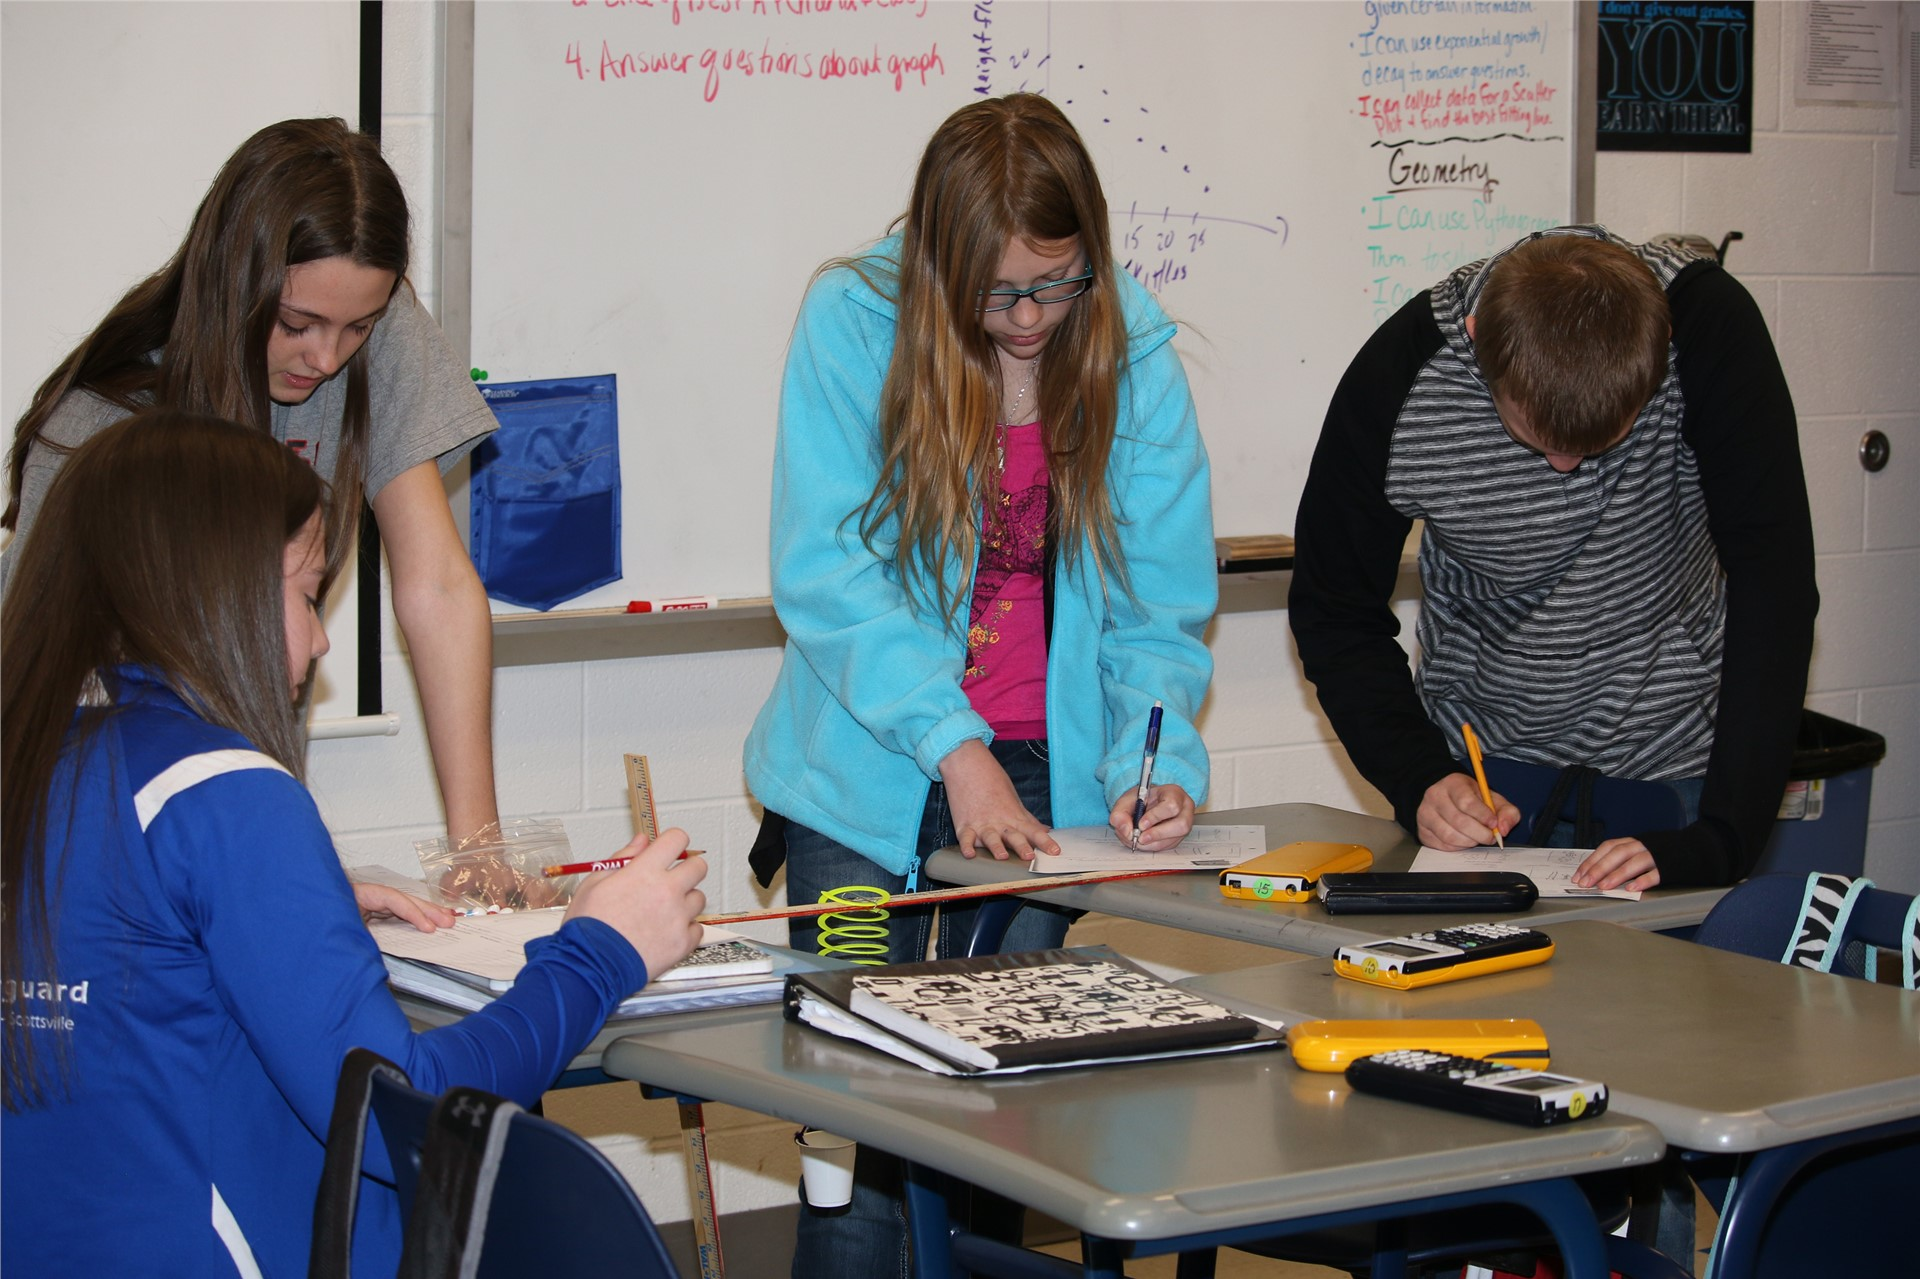 Math students at high school involved during classroom activity.